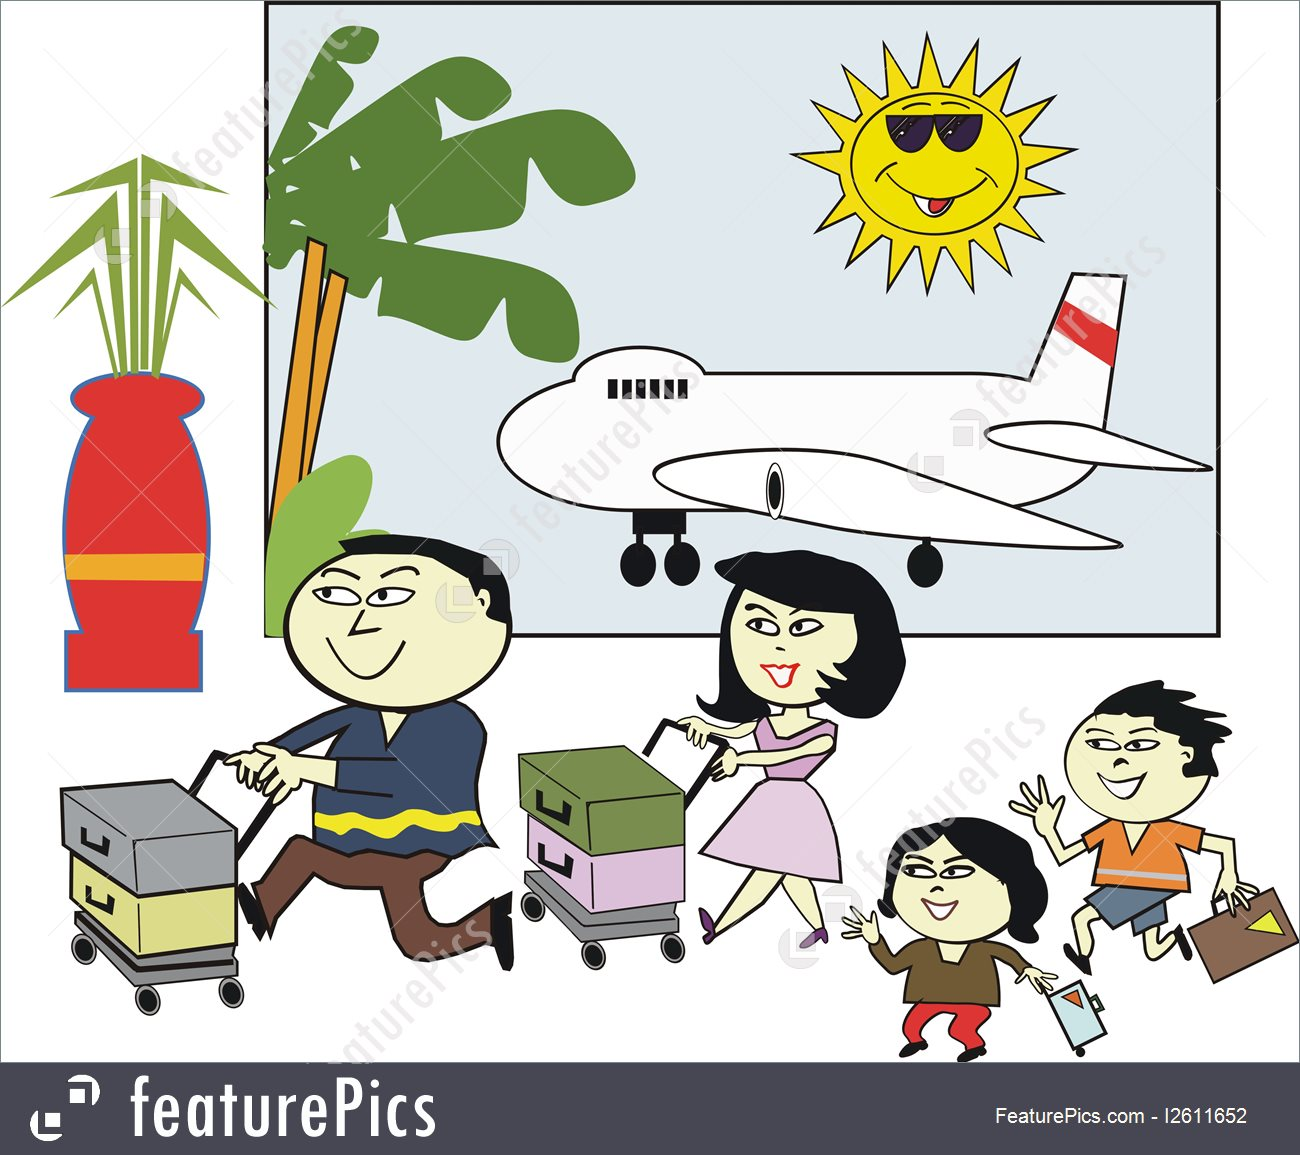 Airport clipart animated. Holiday cartoon pictures group